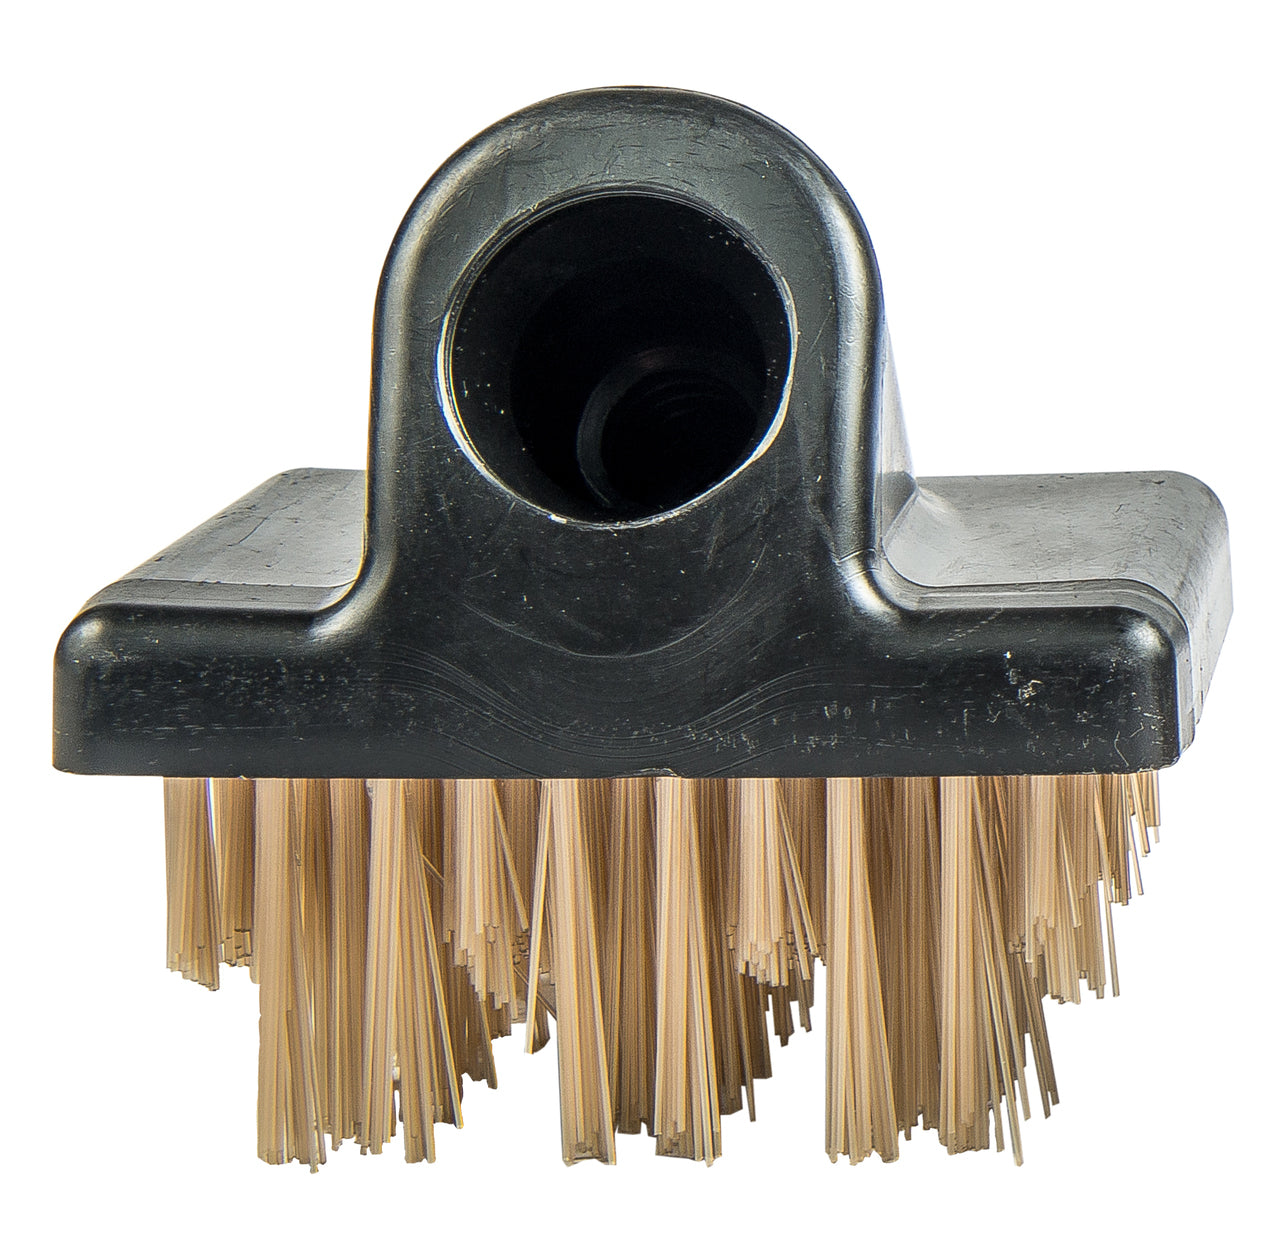 GrillGrate Replacement Head for Grill Brush - Premier Grilling